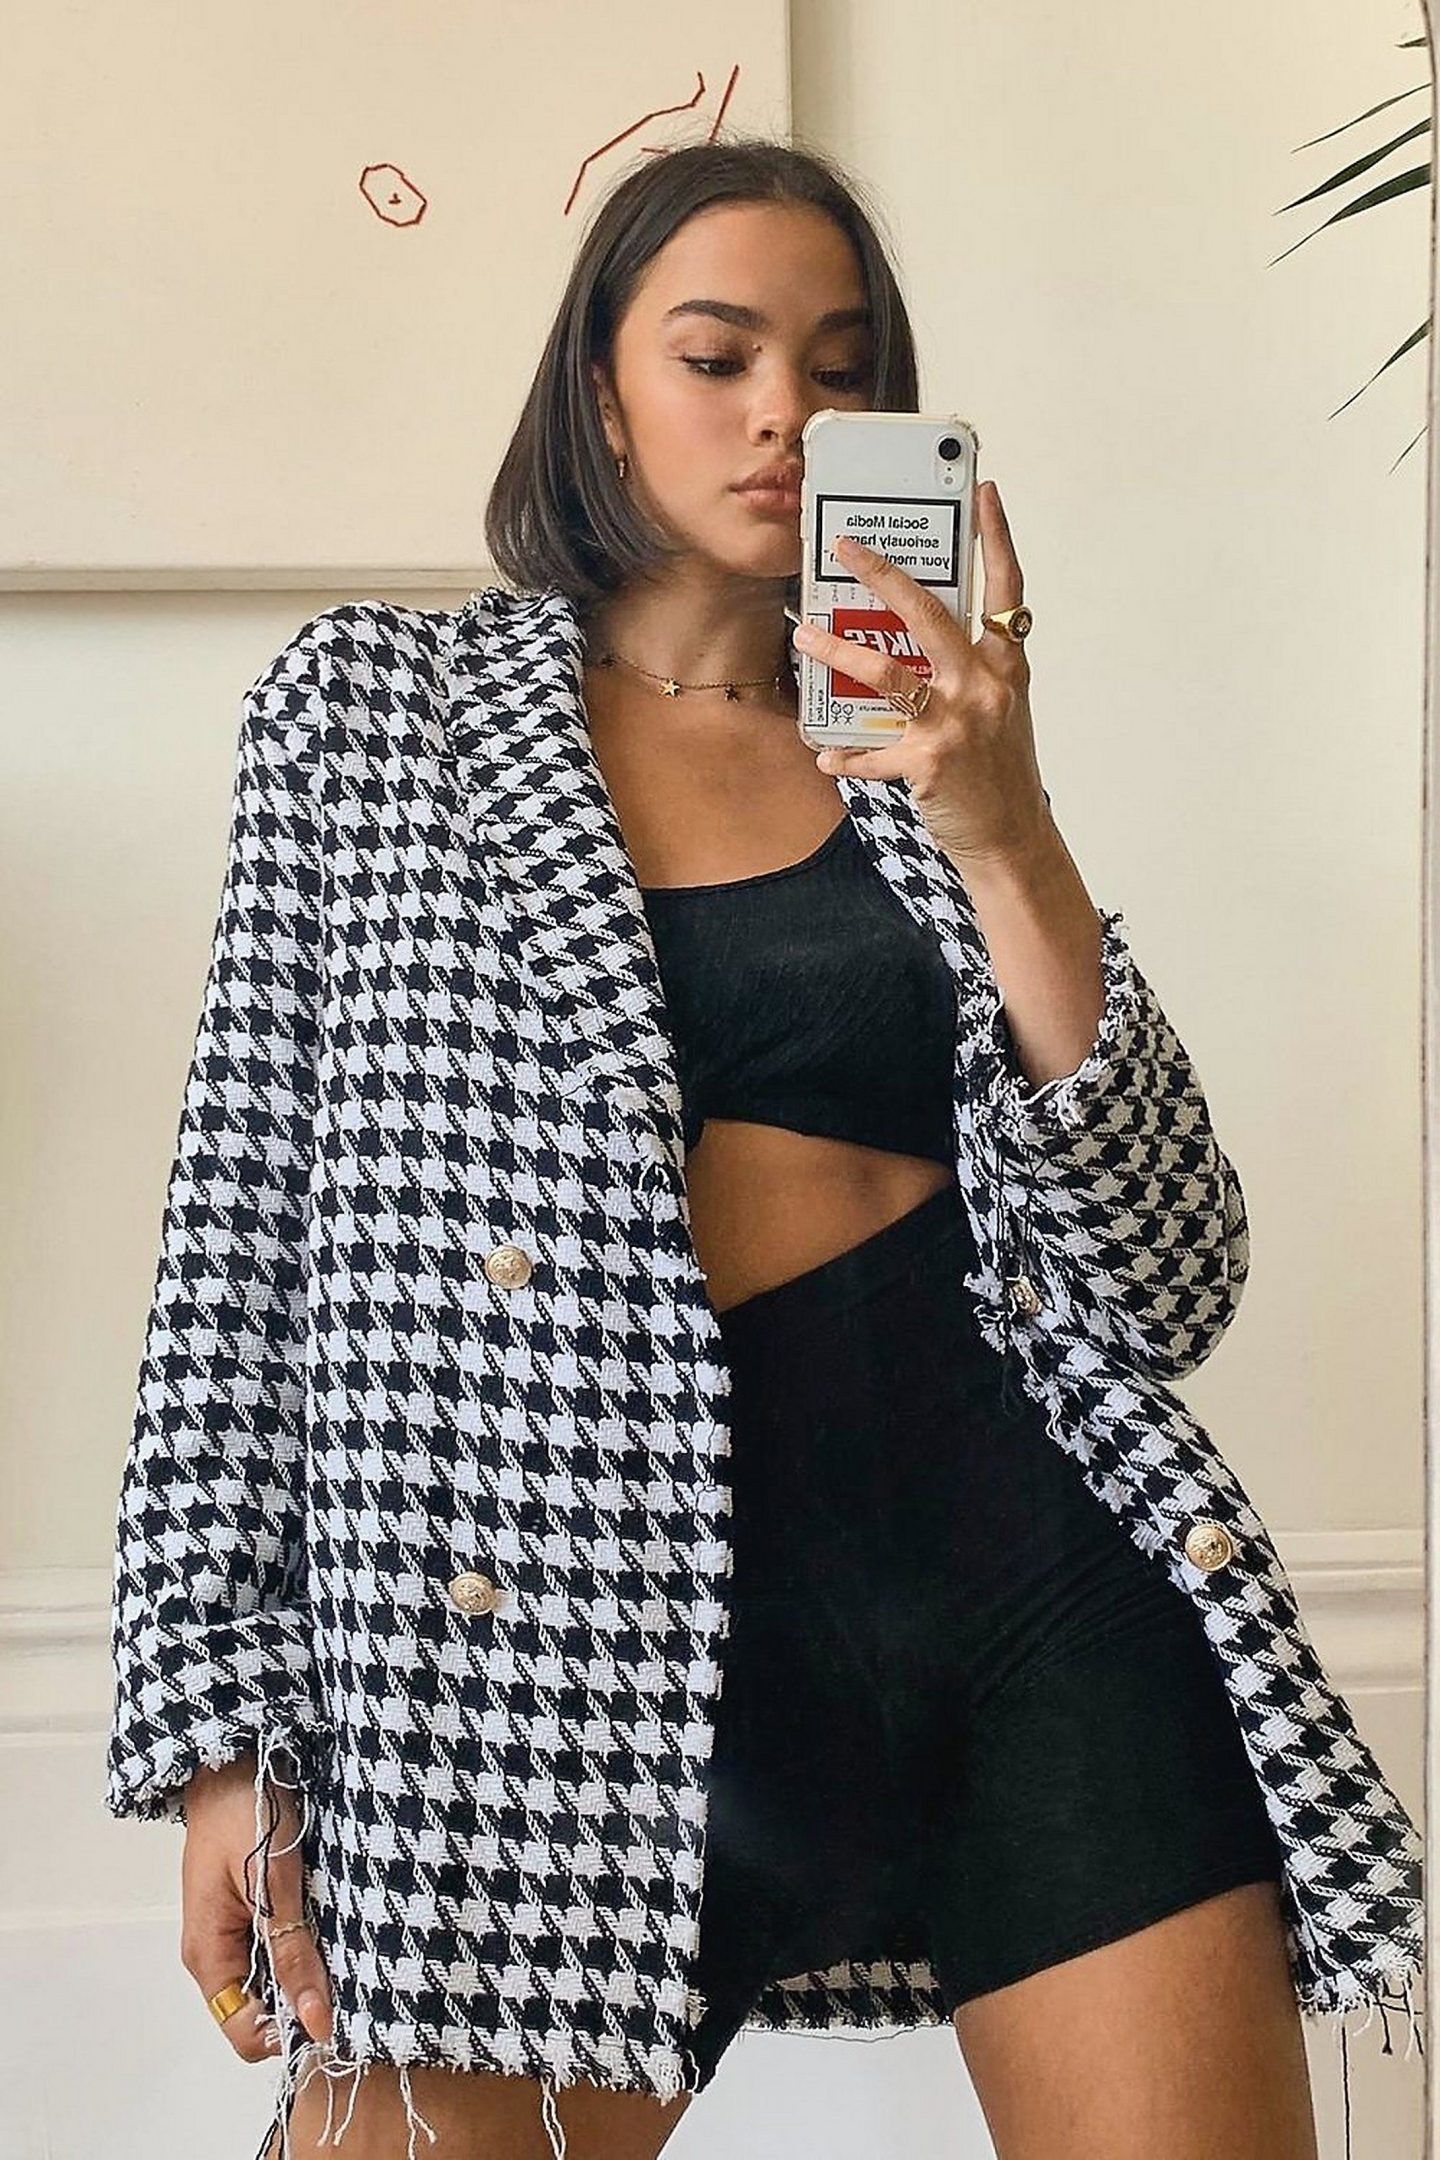 Blazer outfit with crowbar pattern in black and white